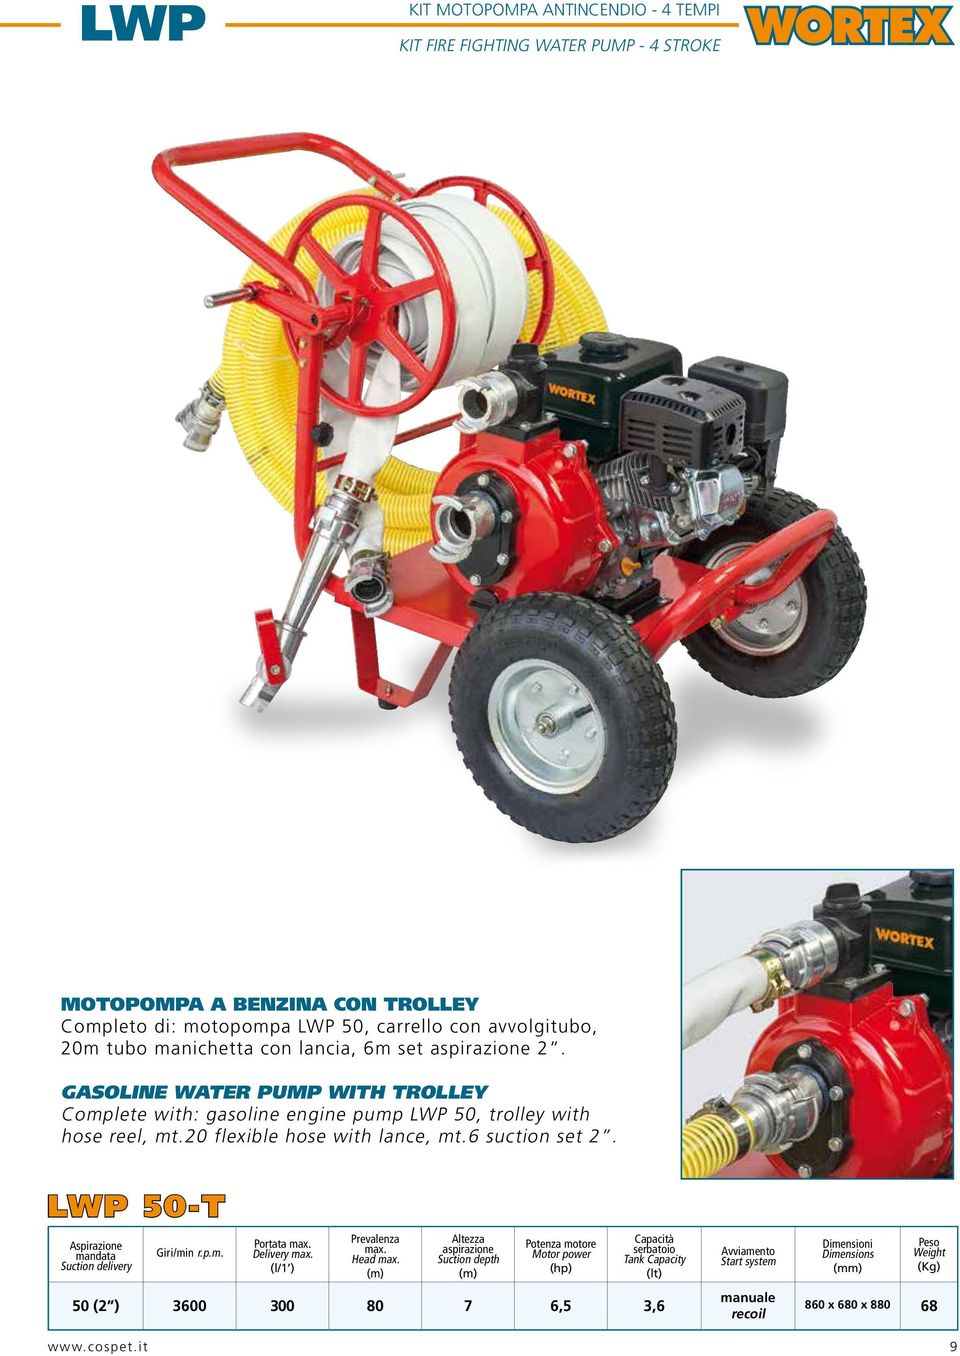 GASOLINE WATER PUMP WITH TROLLEY Complete with: gasoline engine pump LWP 50, trolley with hose reel, mt.20 flexible hose with lance, mt.6 suction set 2.